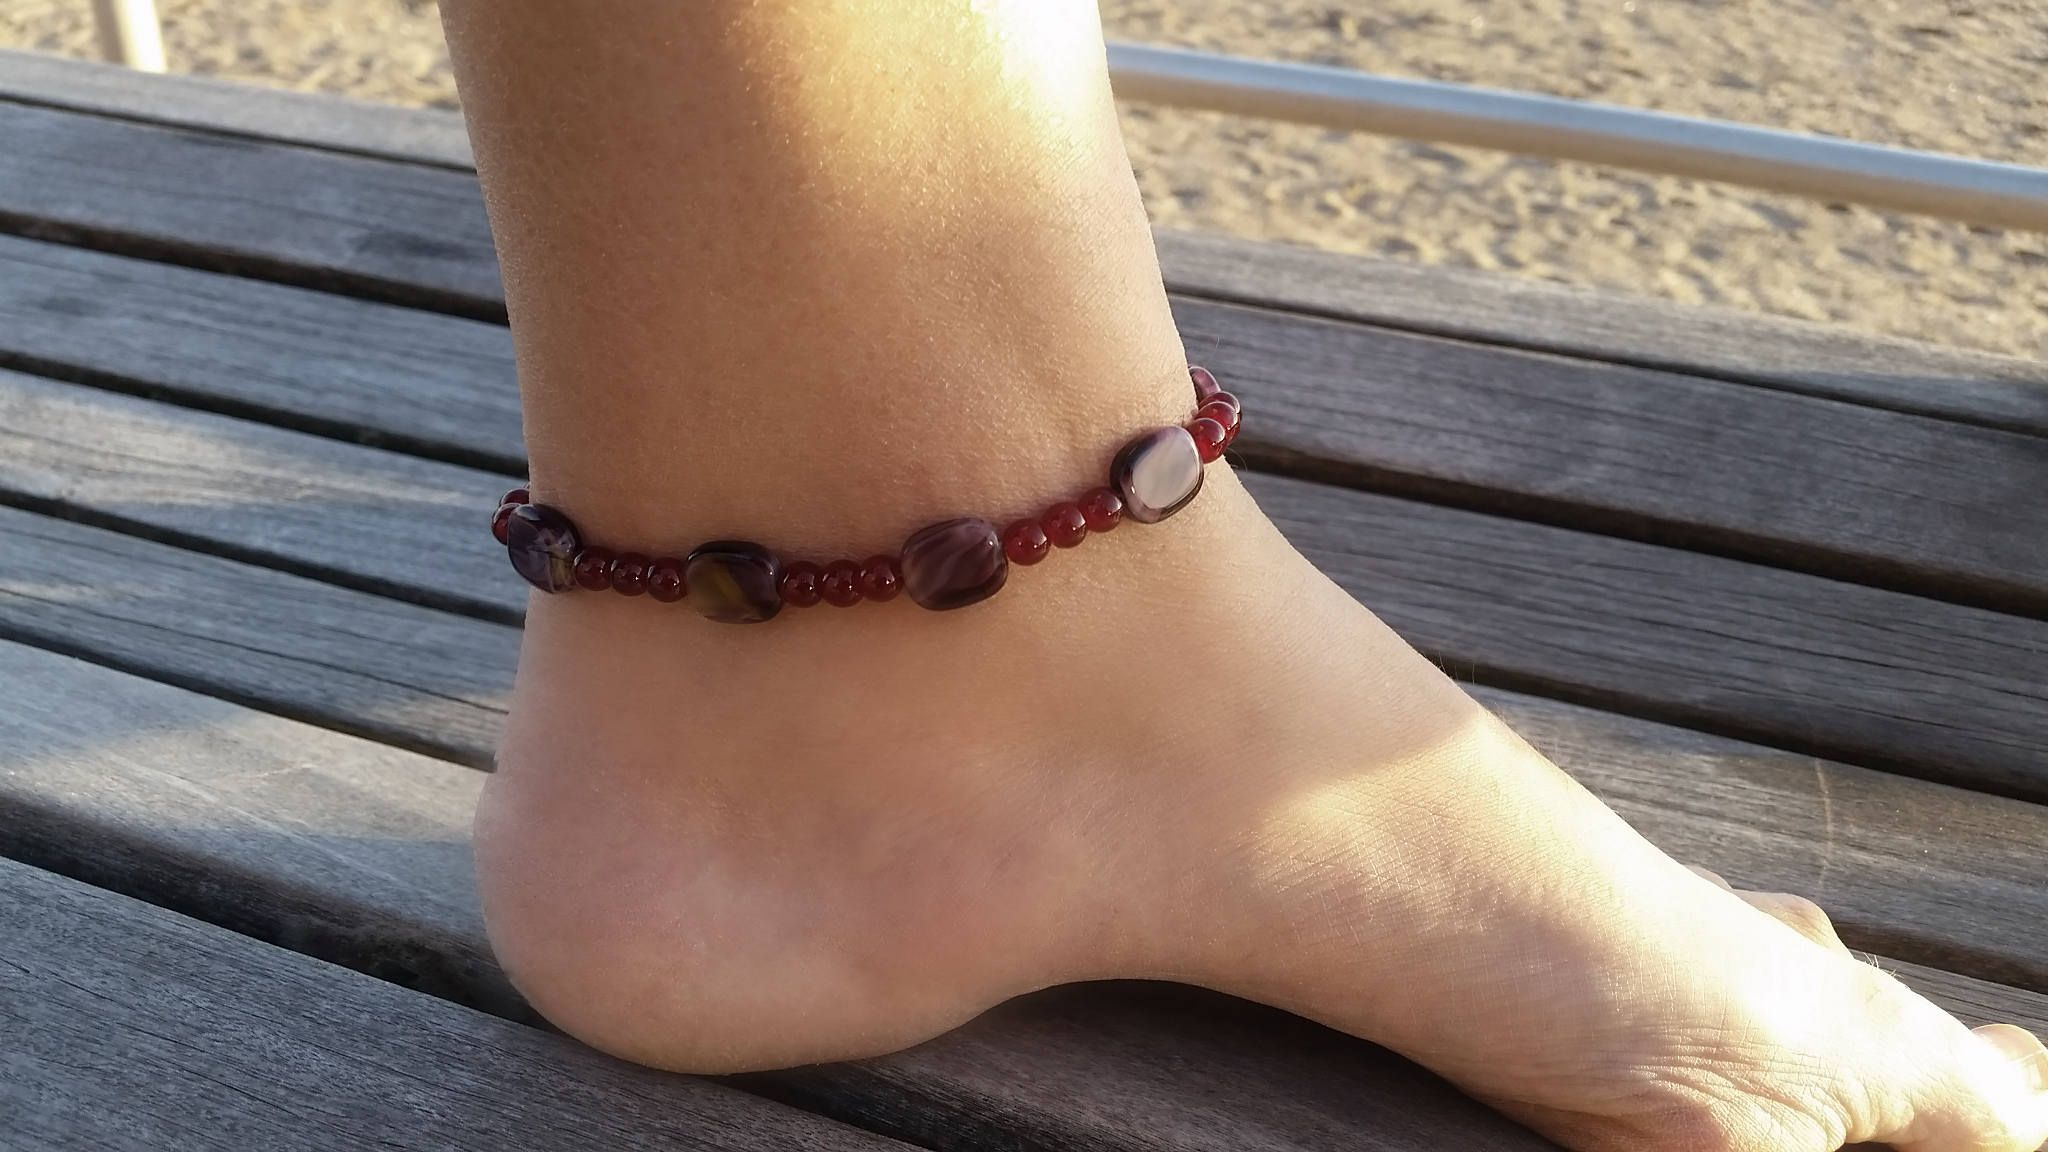 women jewelry for foot red bracelet pin beaded ankle anklets beach her anklet